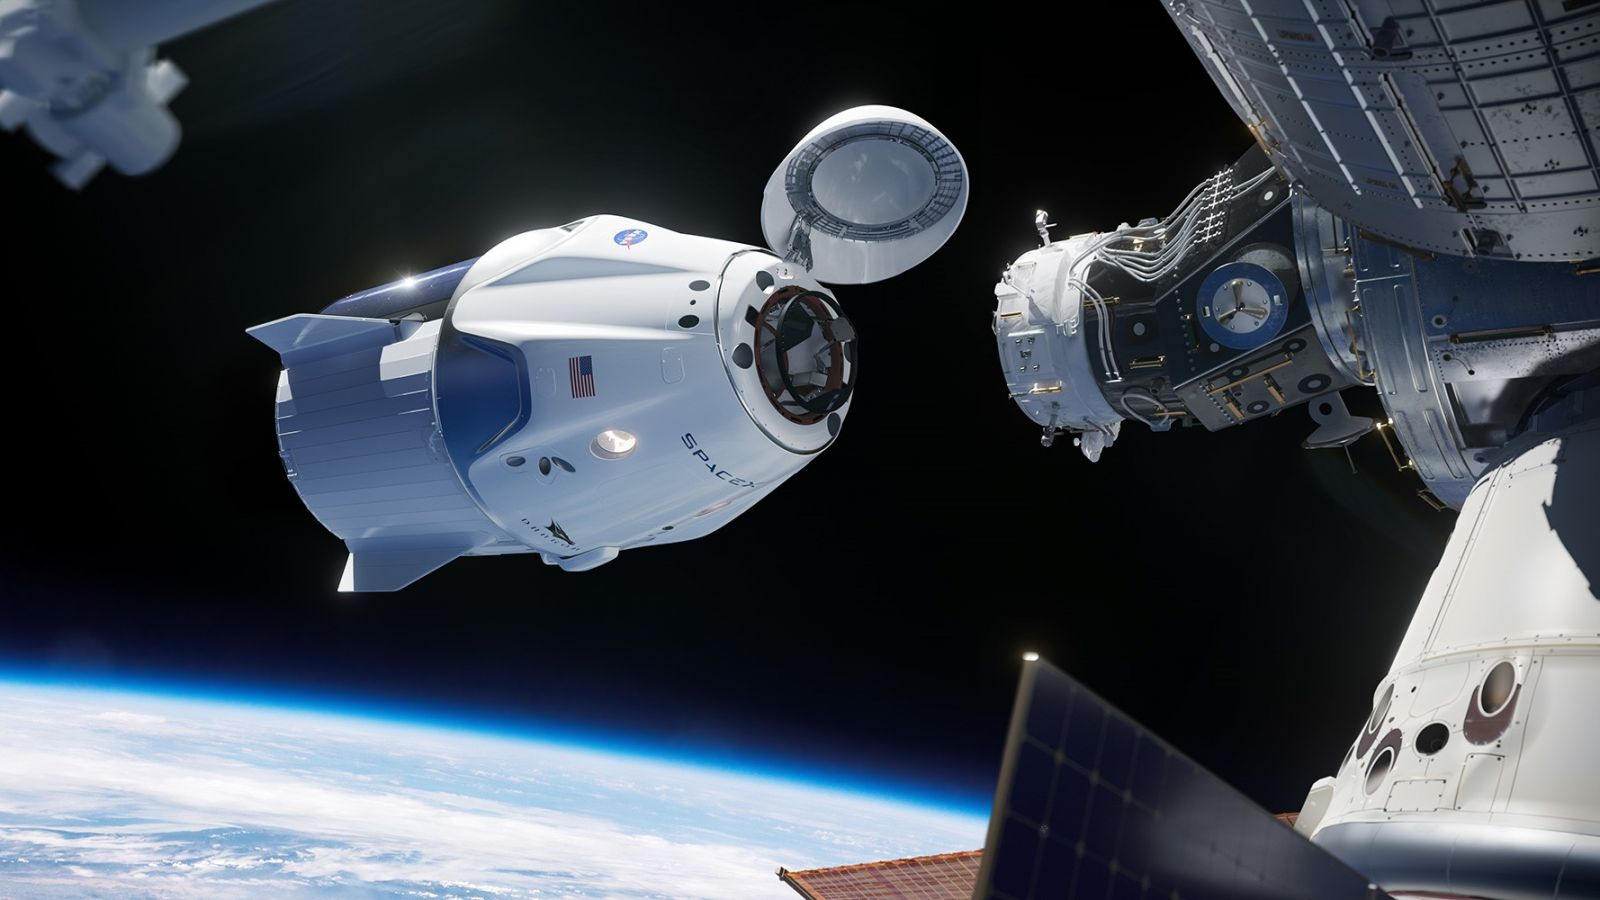 An artist's rendering of SpaceX's Crew Dragon spacecraft on final approach to the International Space Station. Image Credit: SpaceX